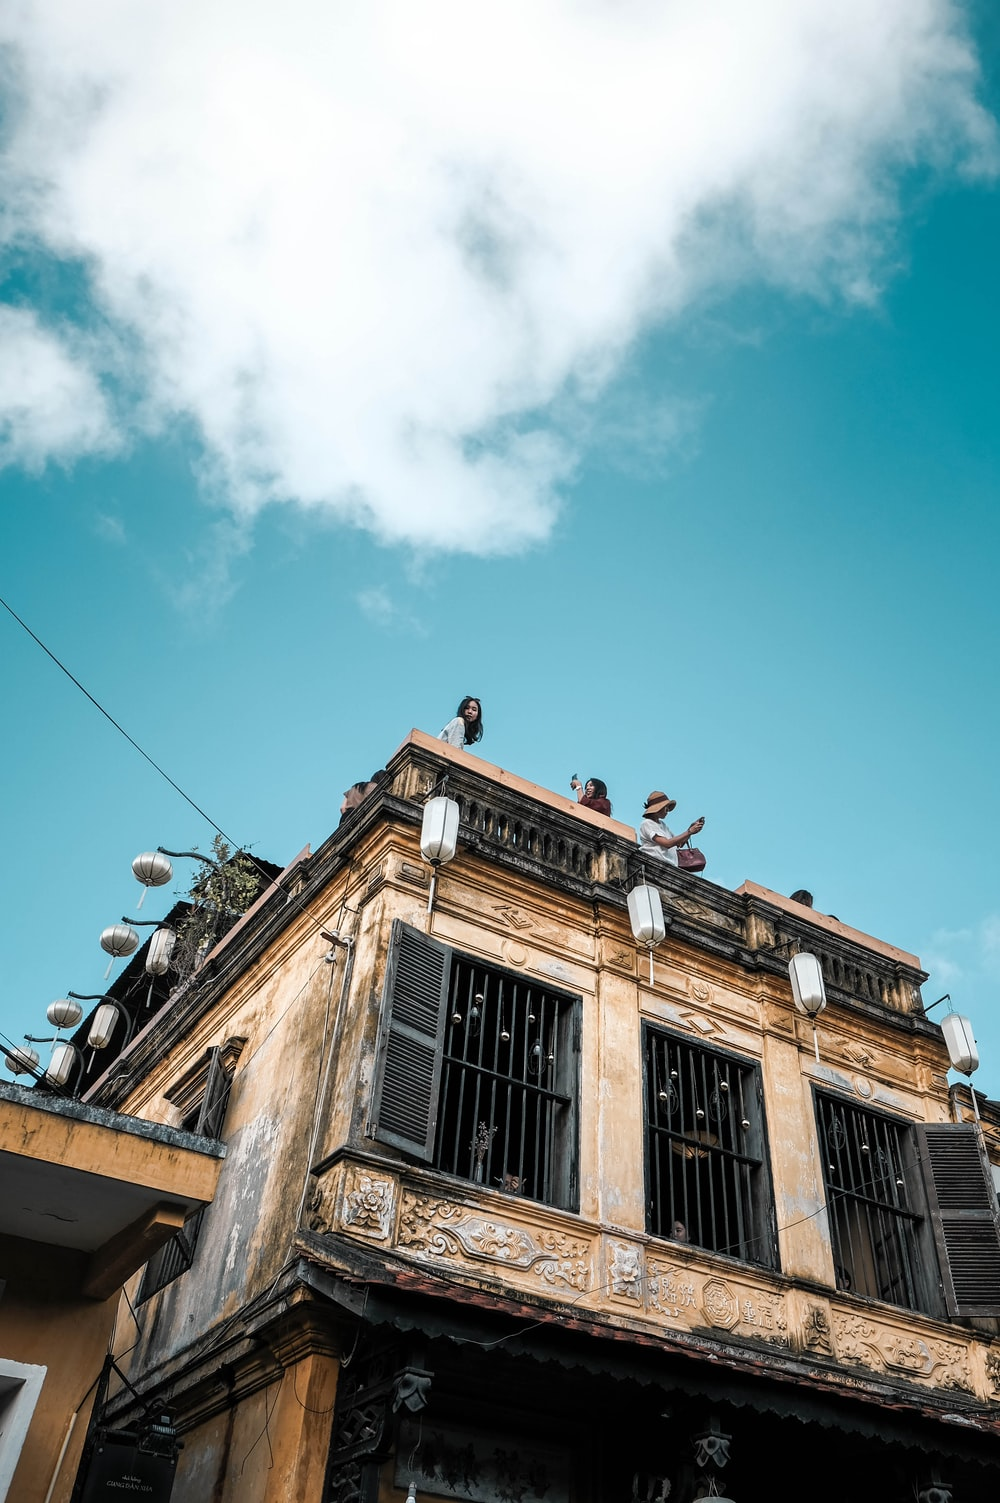 people at the roof of a building during day